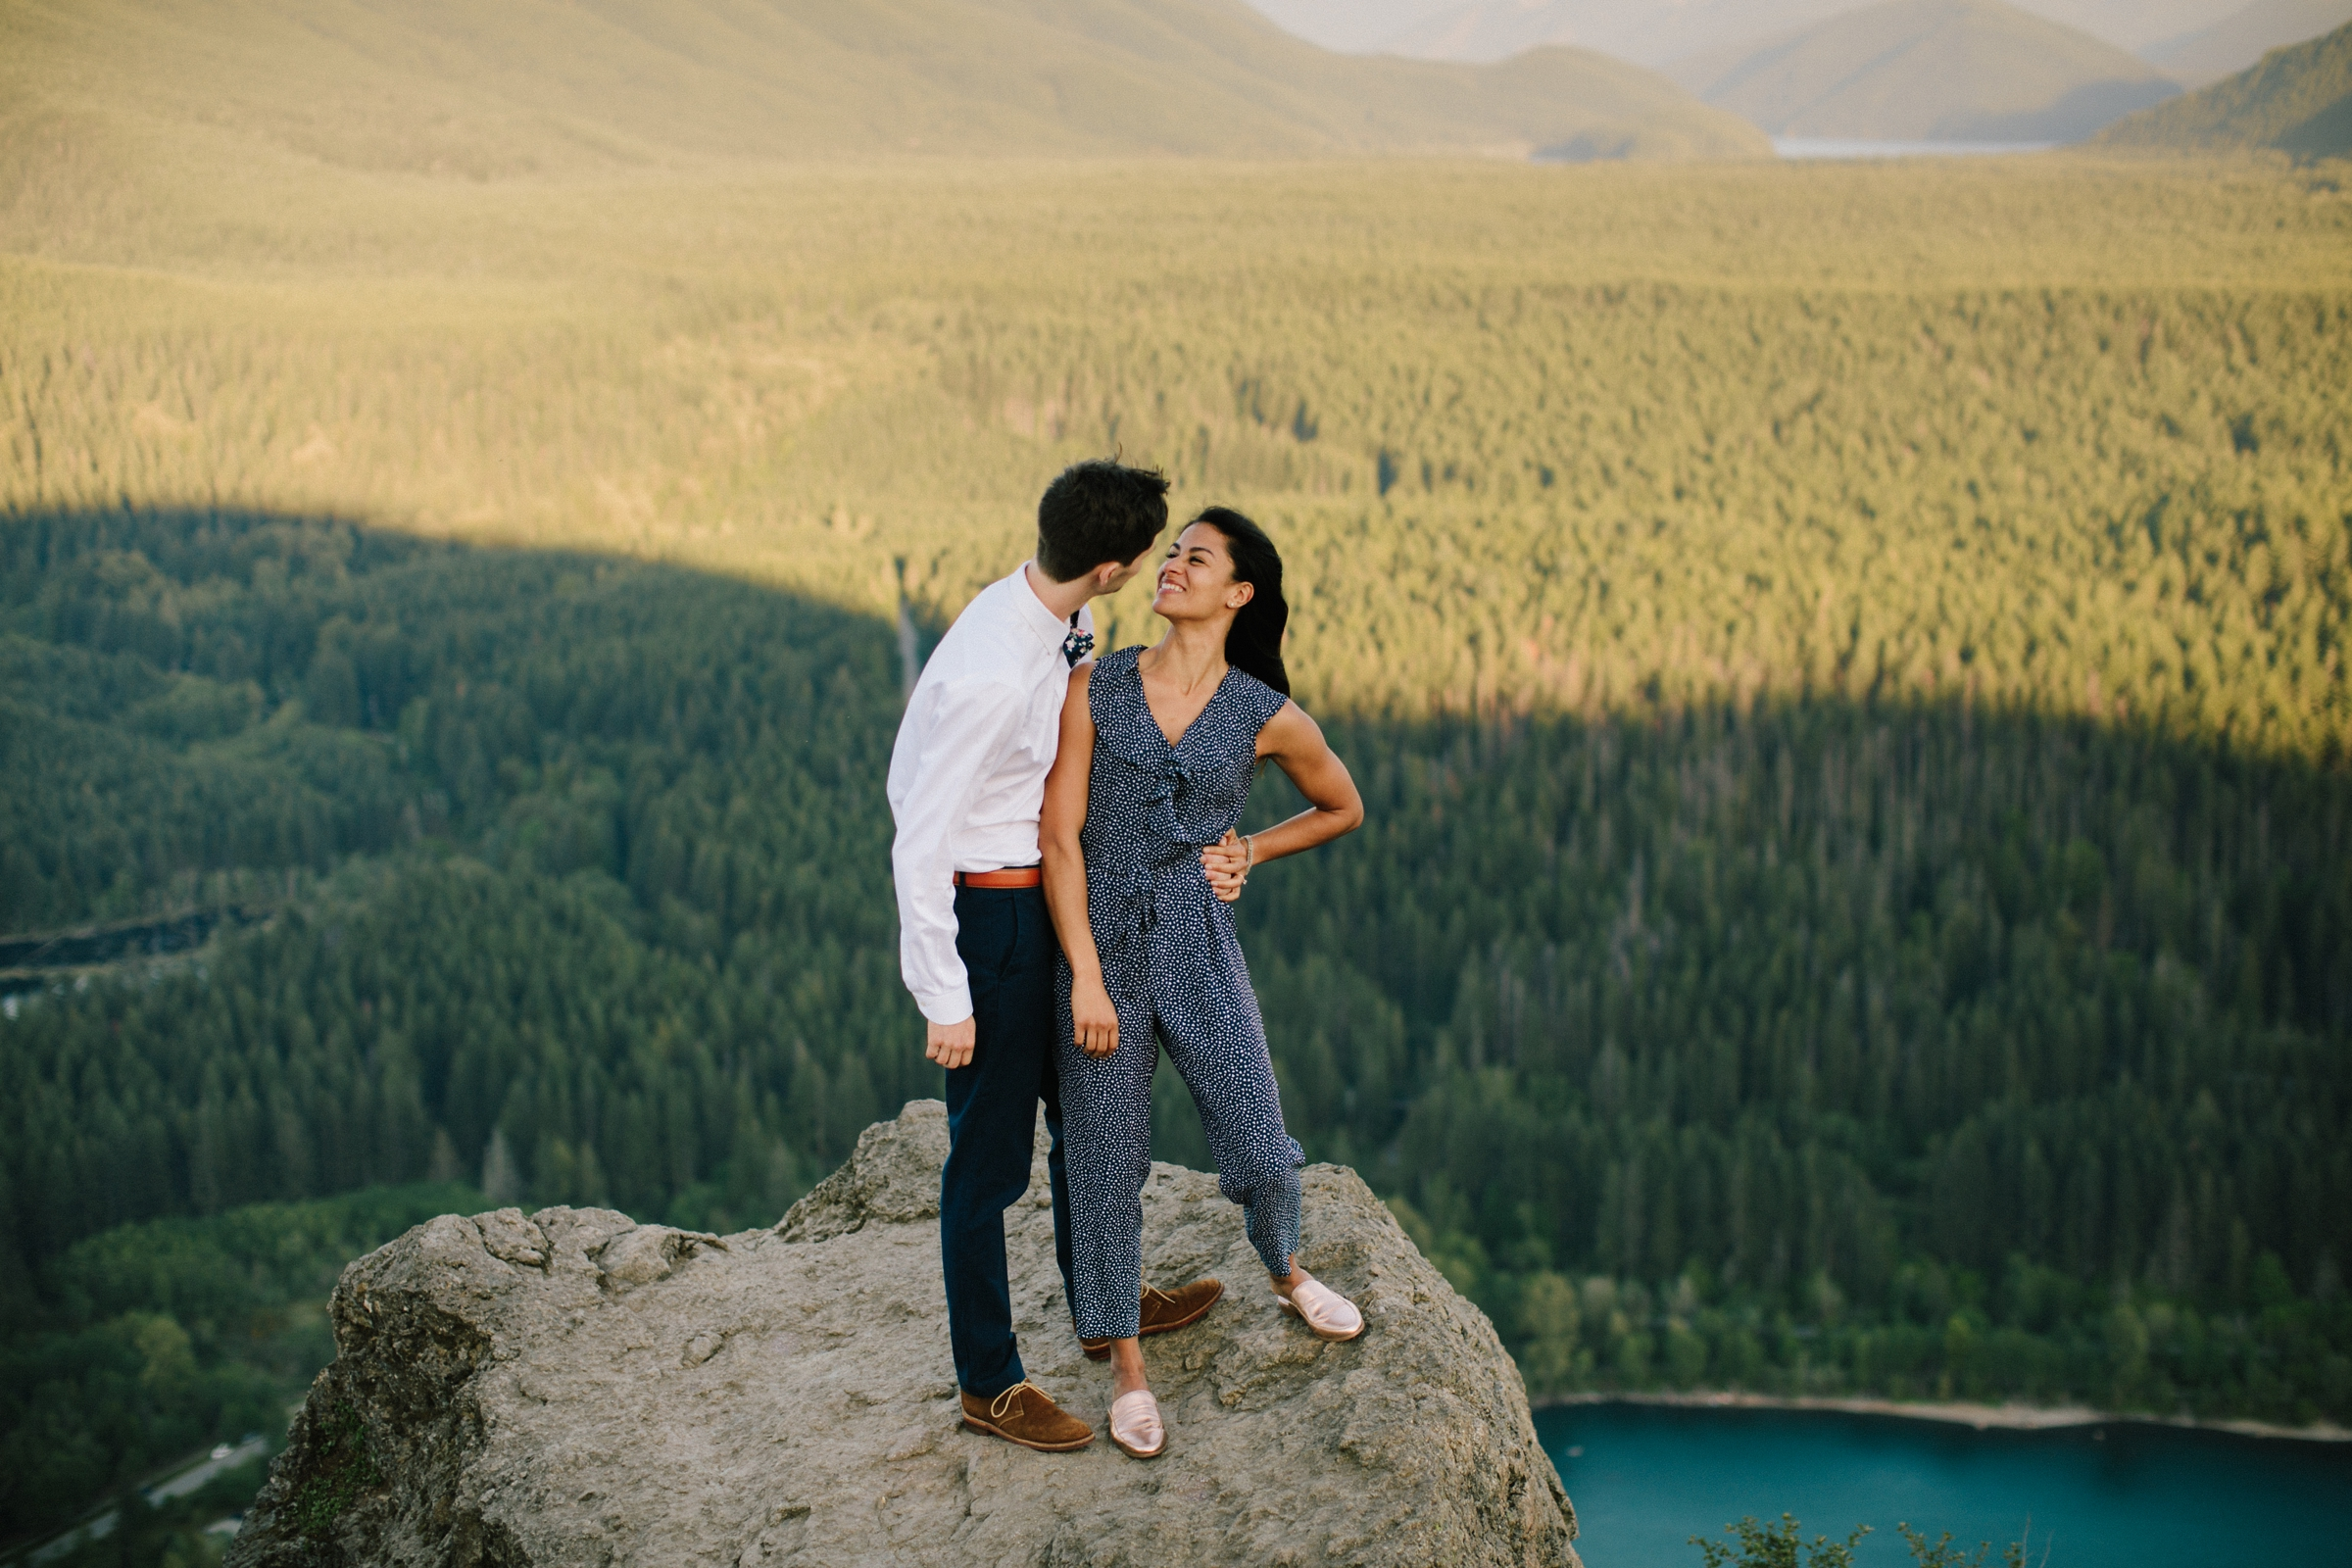 adventure-mountain-top-elopement-photographer-pnw-seattle-washington-wedding-engagement-hike-photography-catie-bergman_0015.jpg